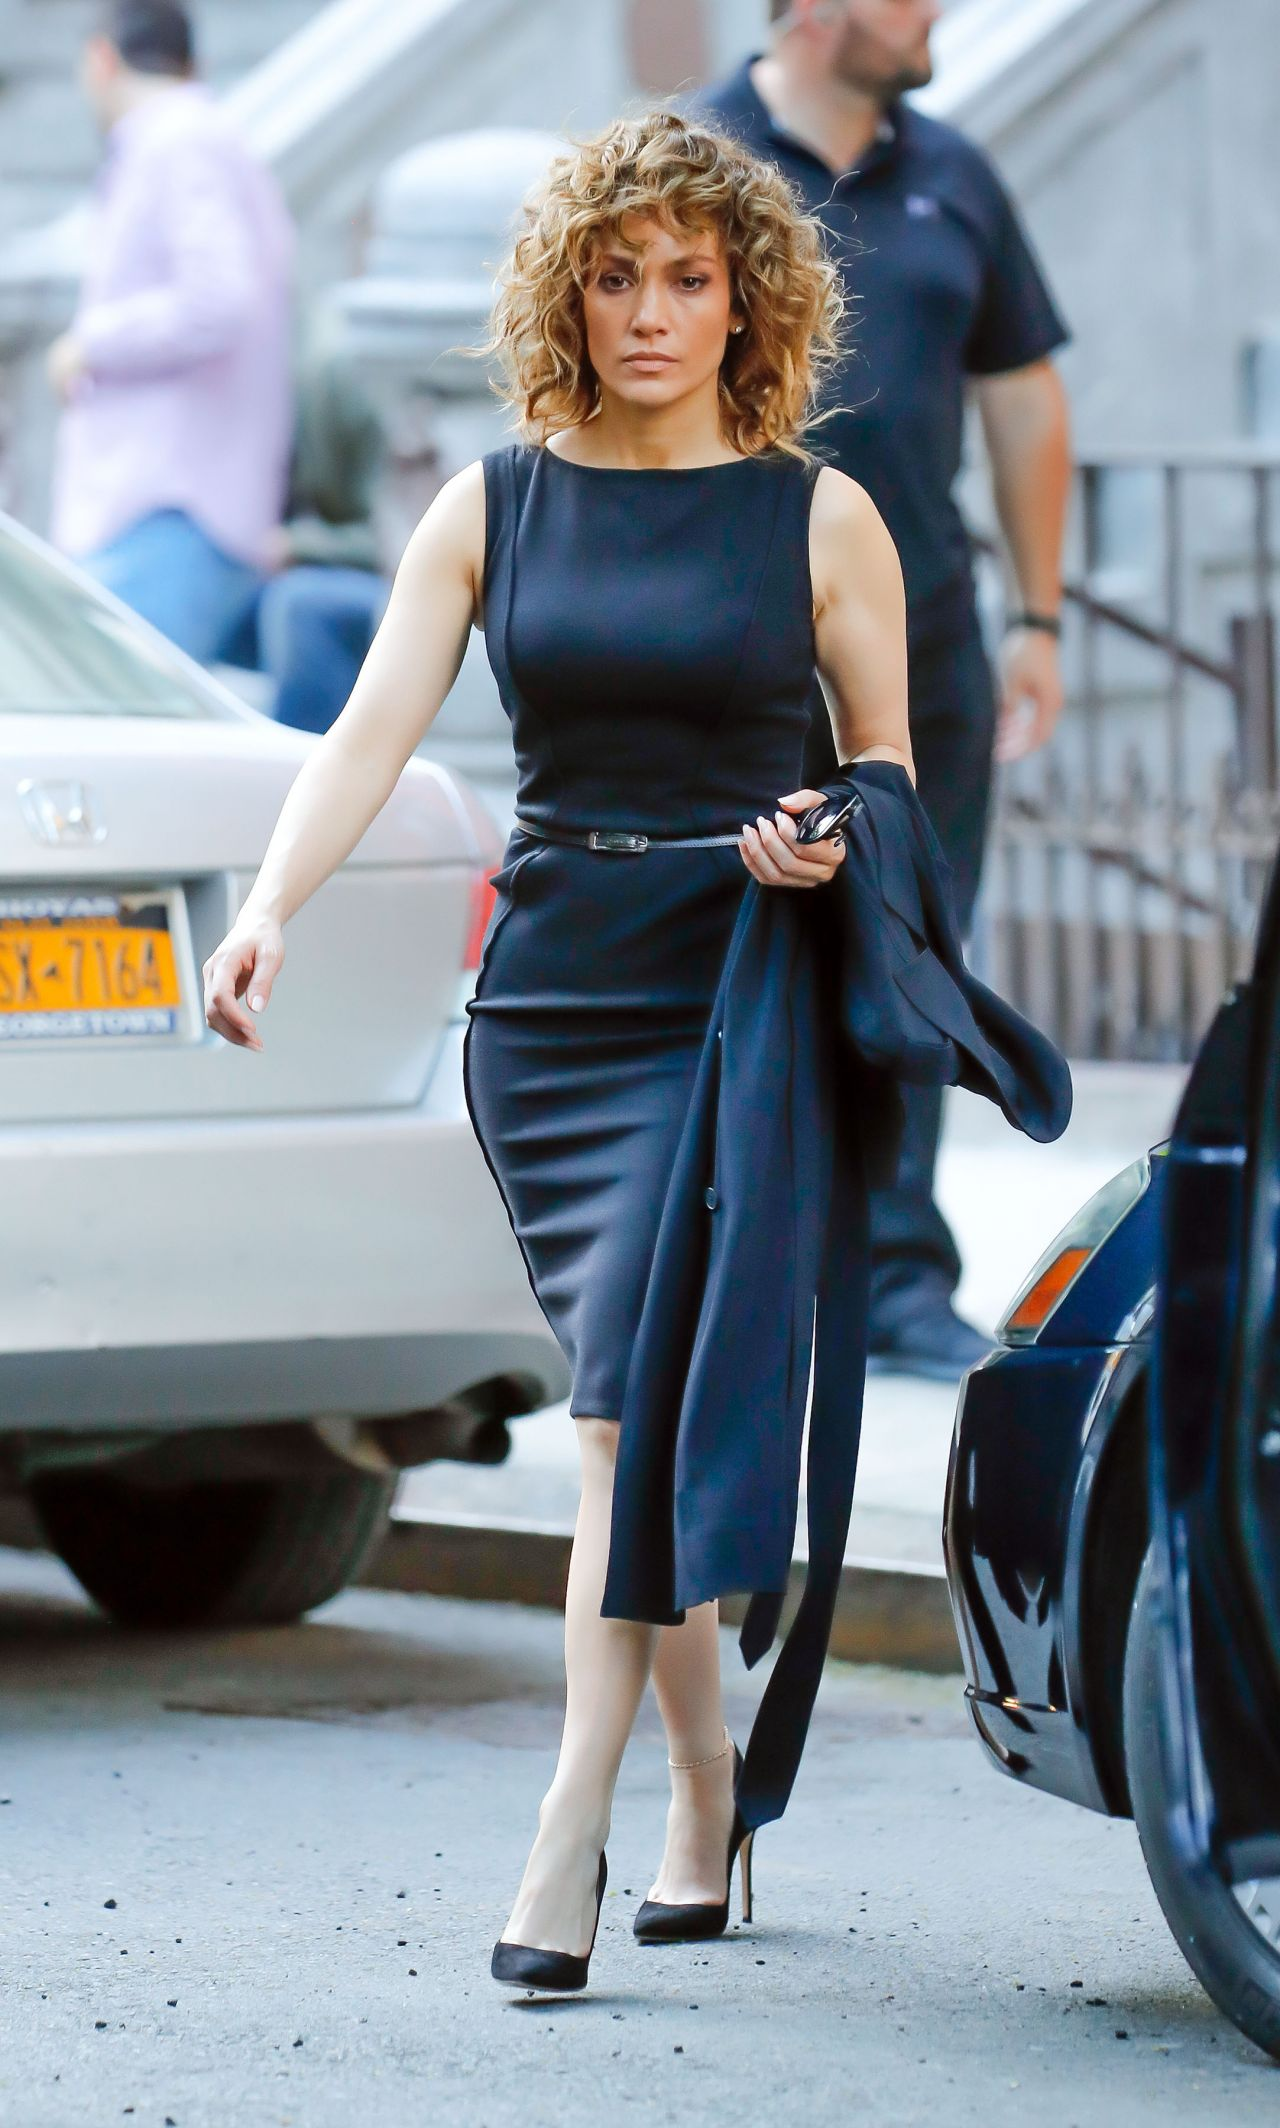 jennifer lopez quotshades of bluequot set in new york 05192017